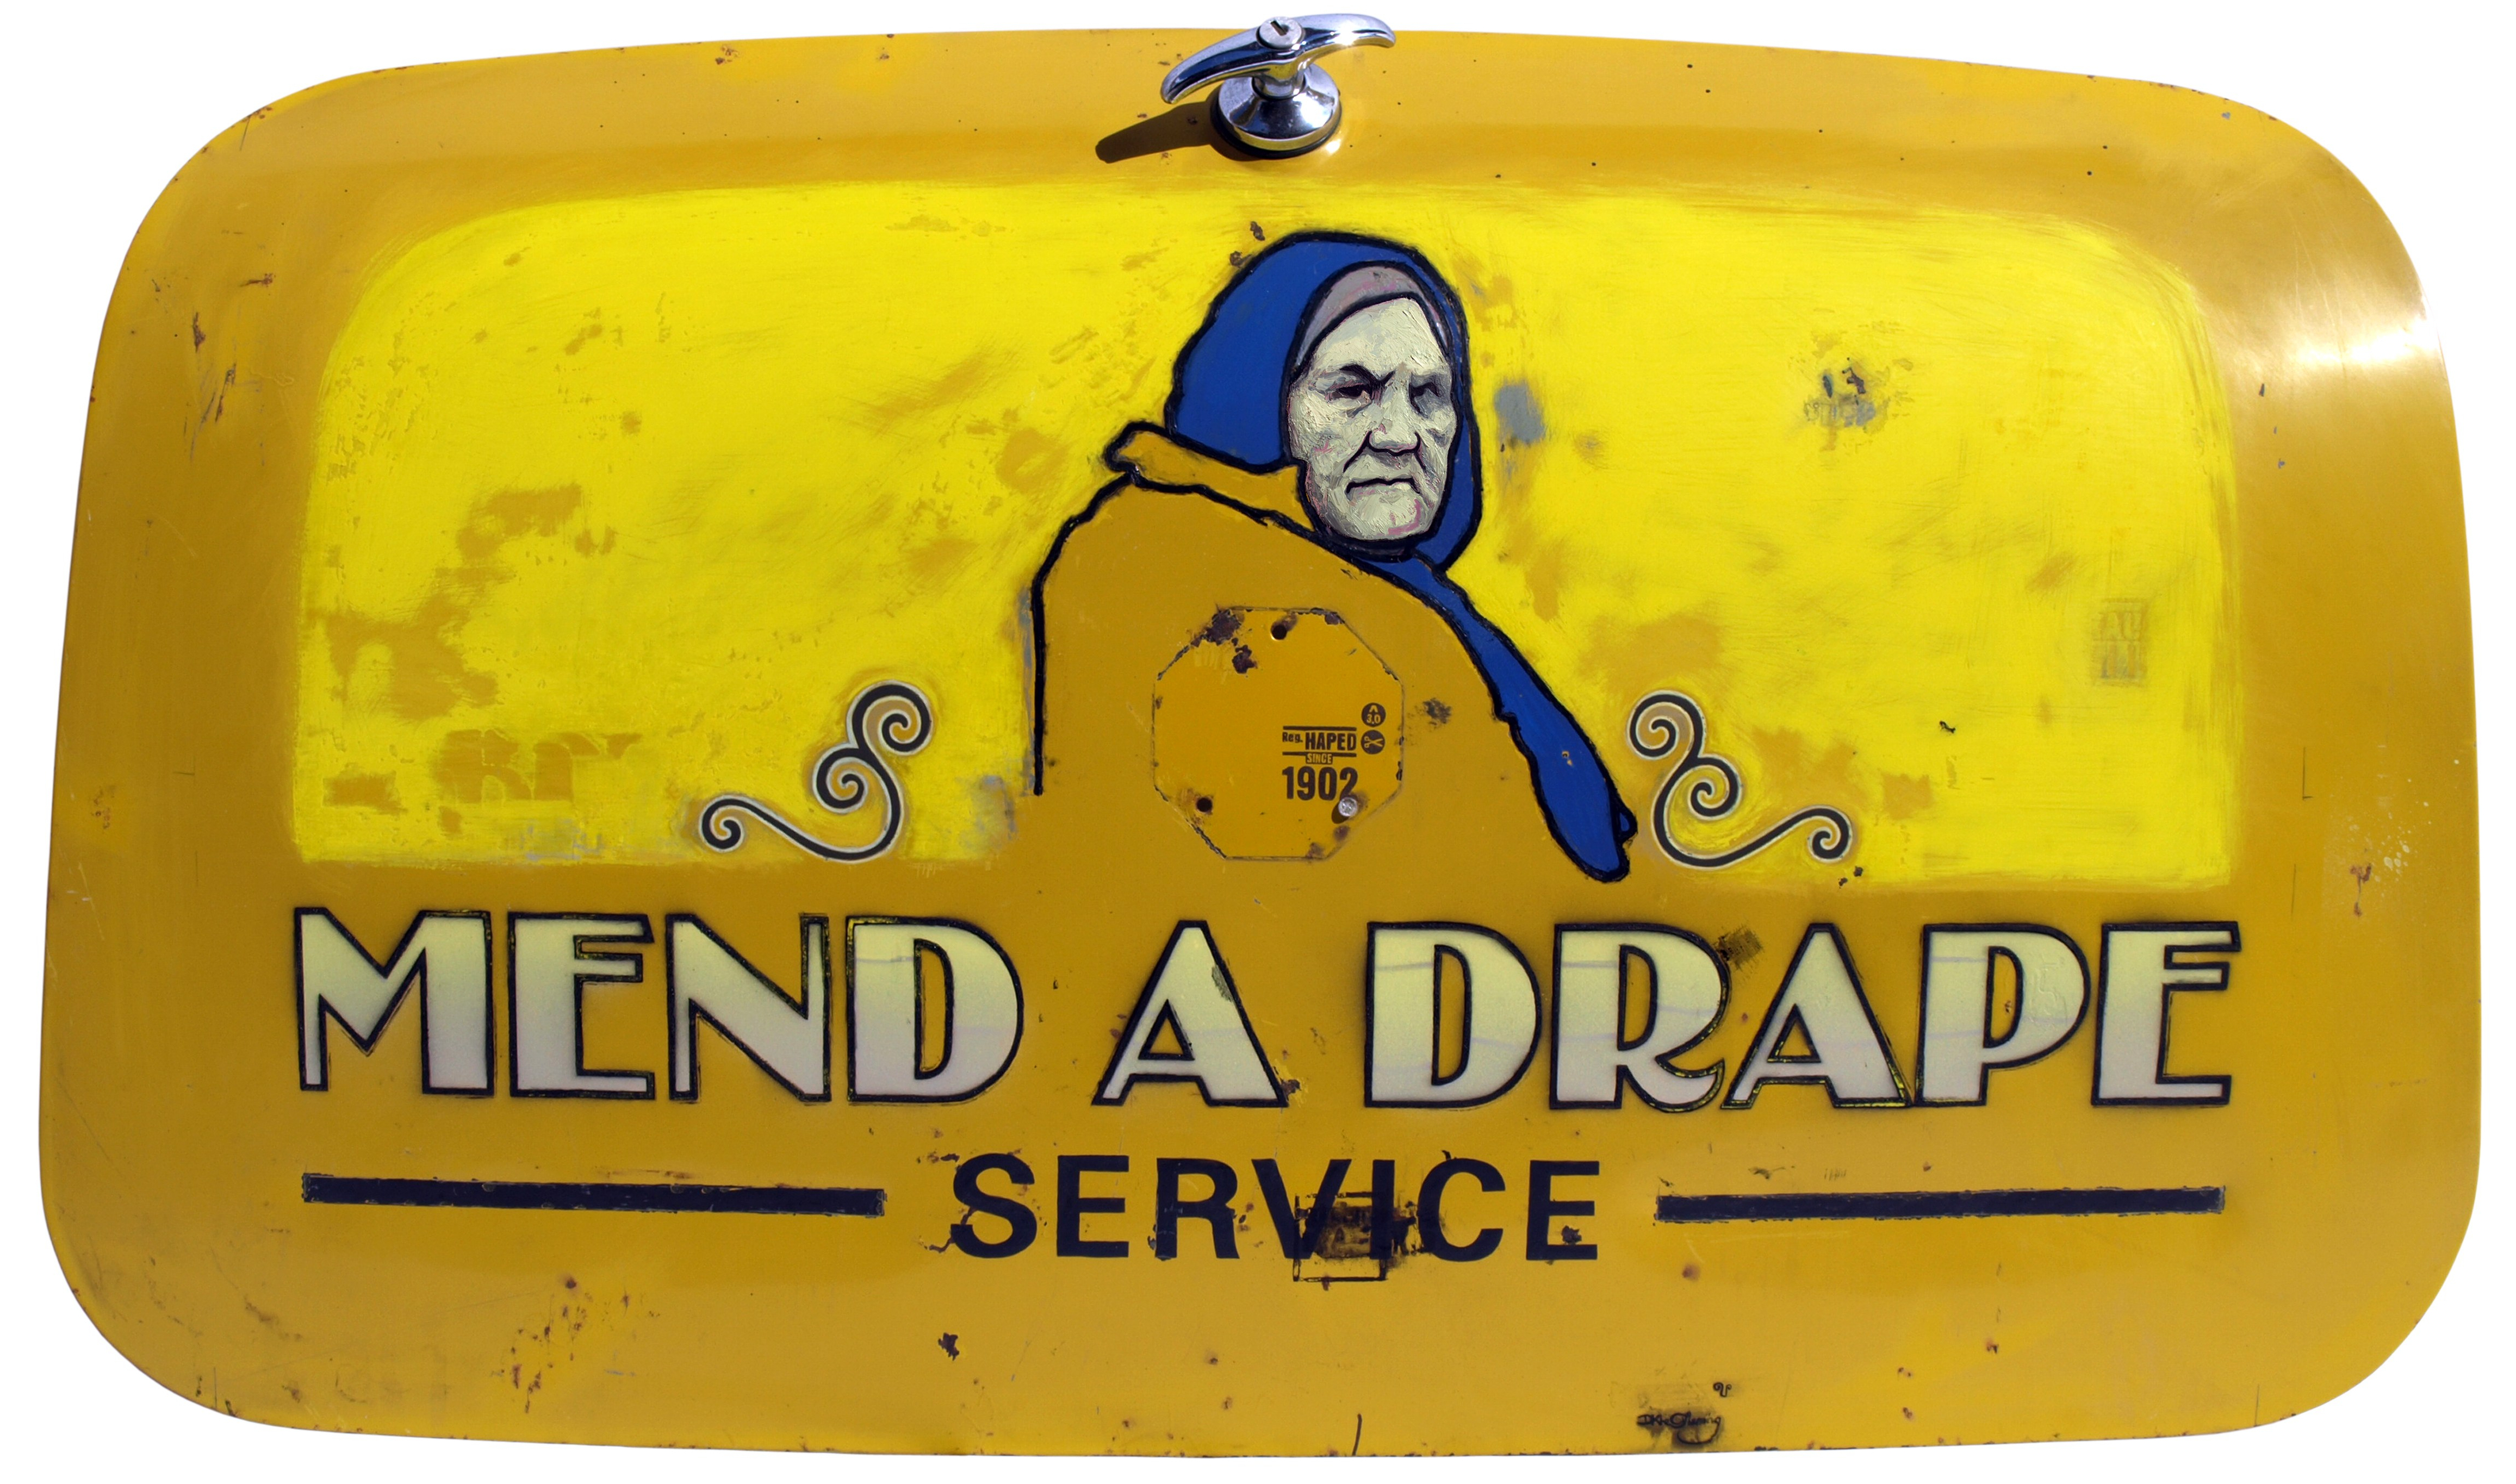 Mend a Drape (2008) oil and eggshell on car boot by New Zealand artist David Le Fleming